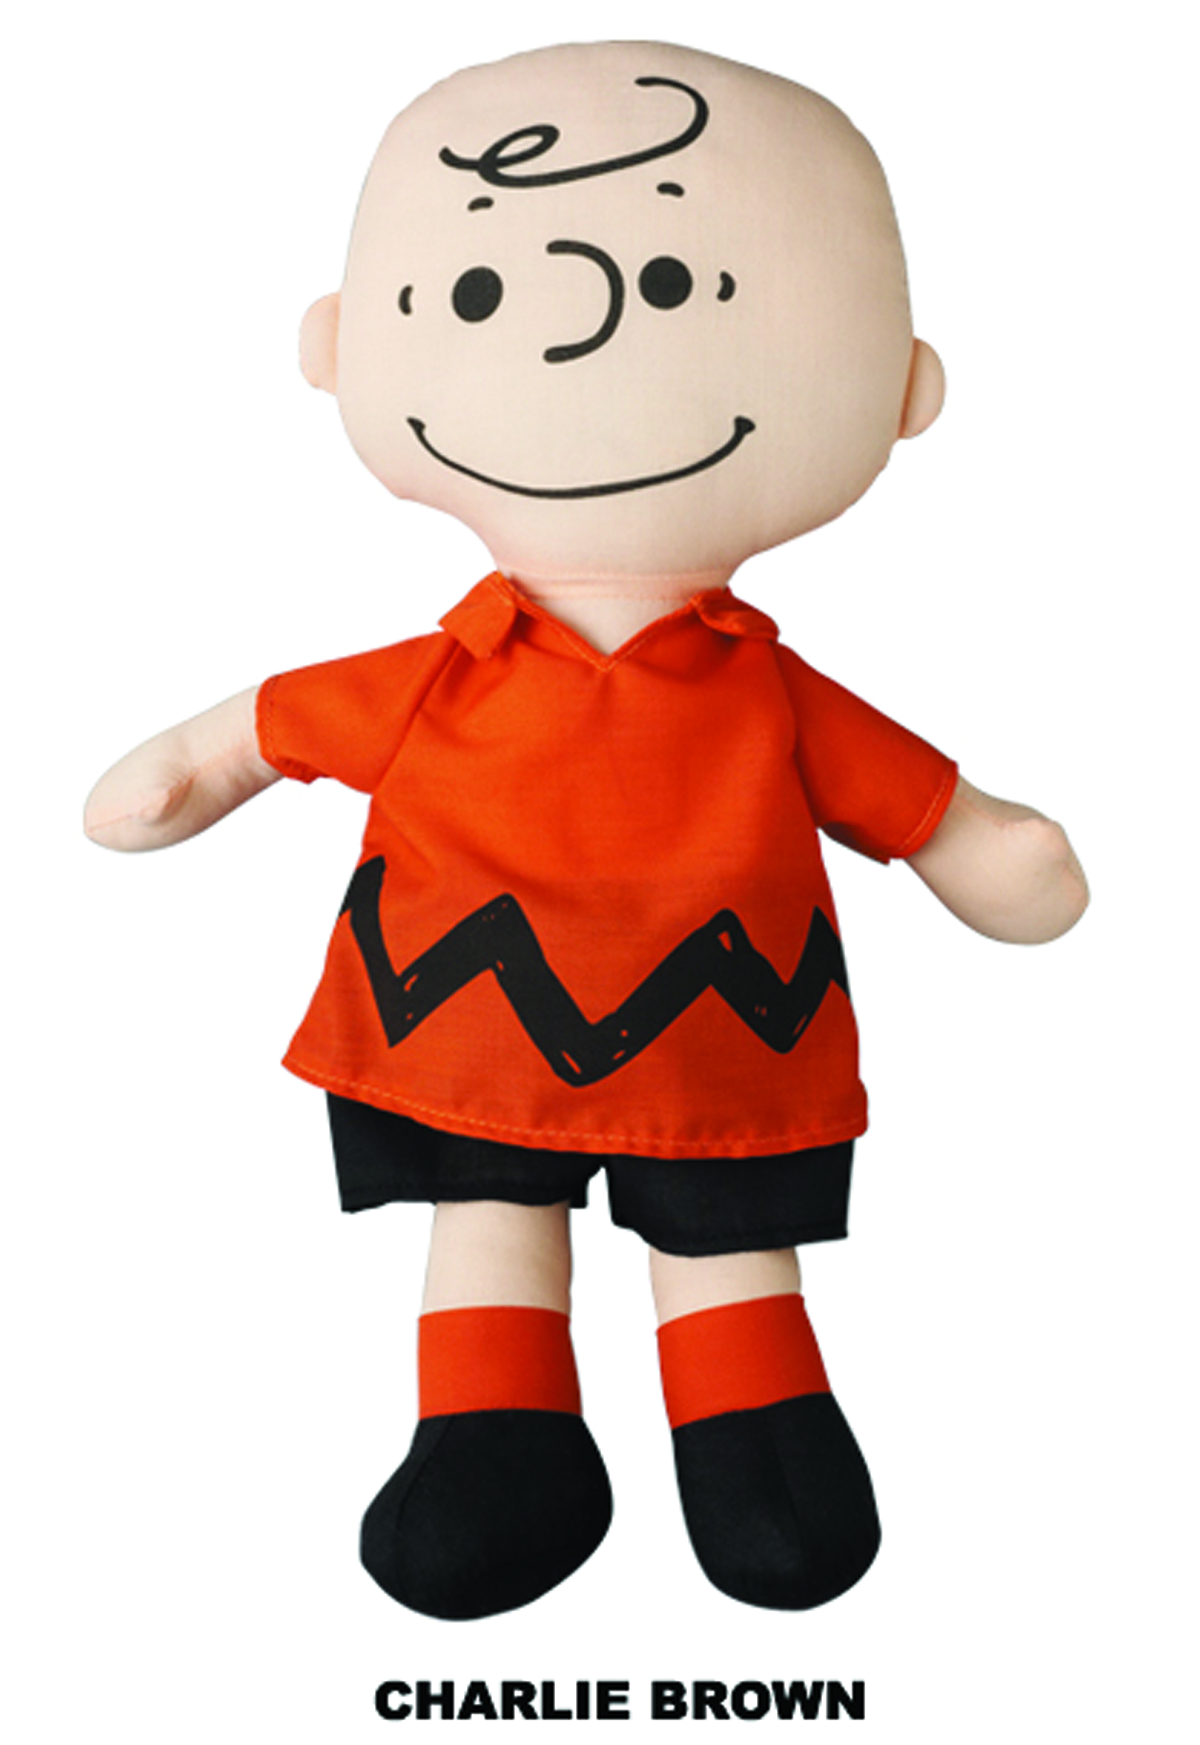 PEANUTS CHARLIE BROWN 2D PLUSH CUSHION